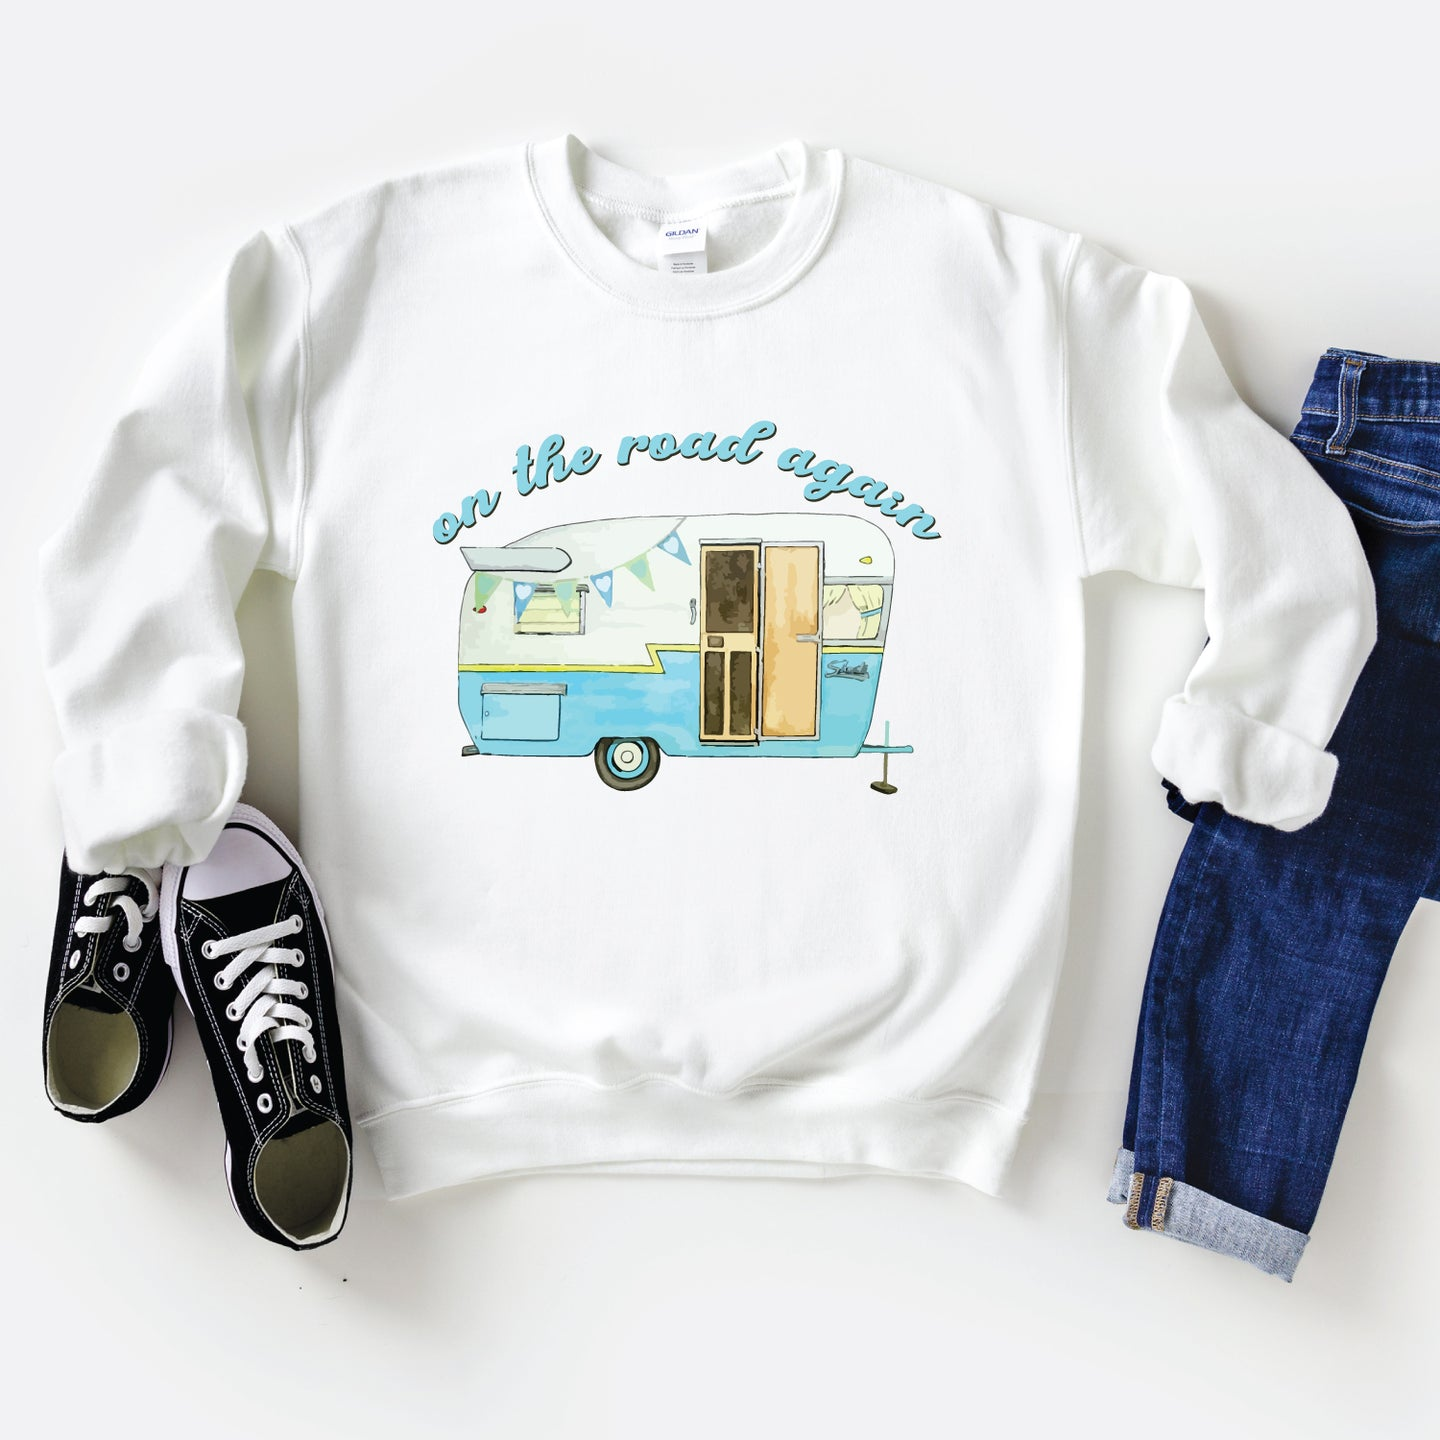 On The Road Again Sweatshirt